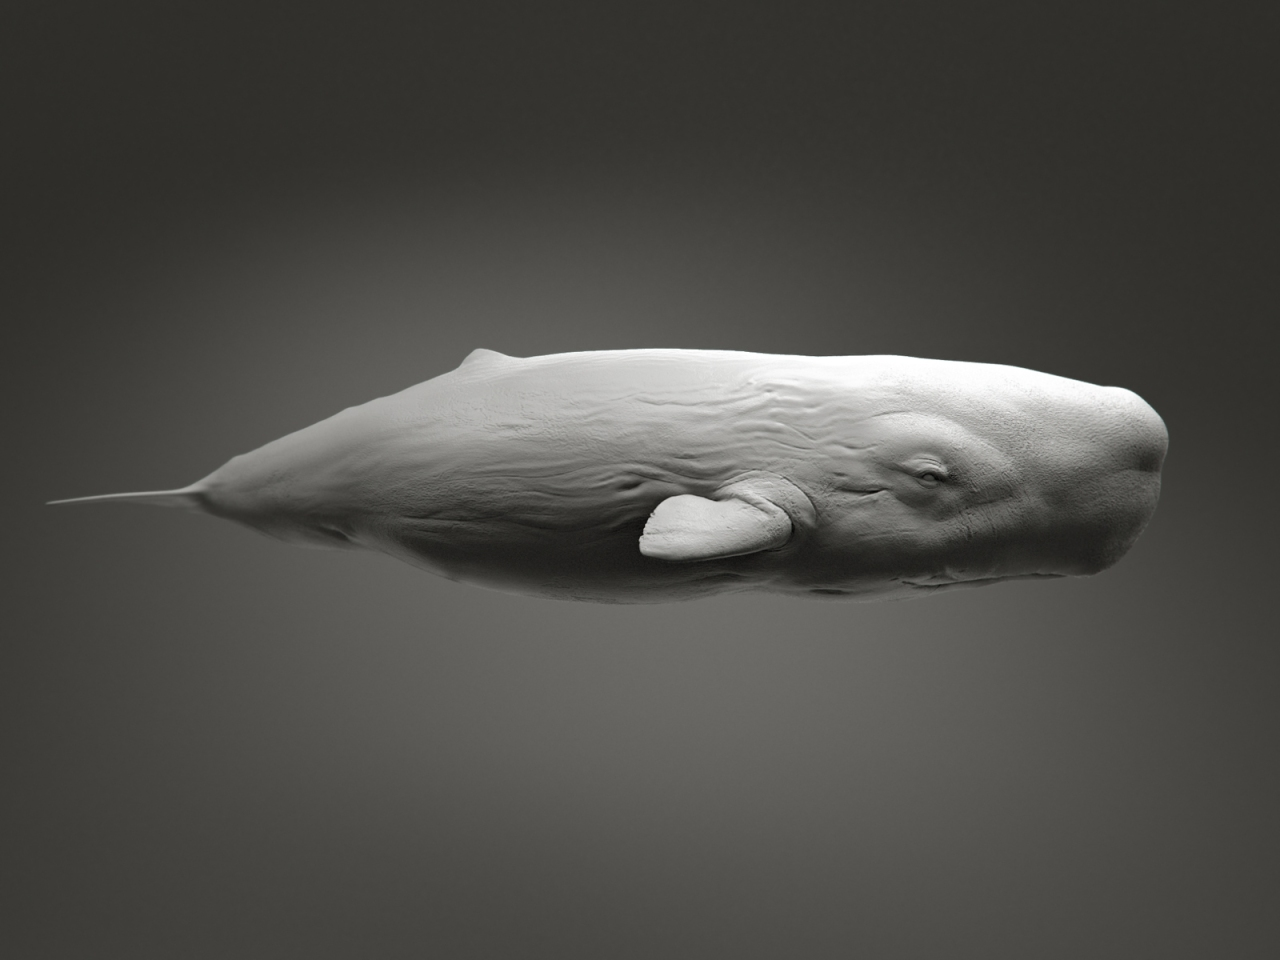 sperm_whale_by_kimsuyeong81-d5sc1v1